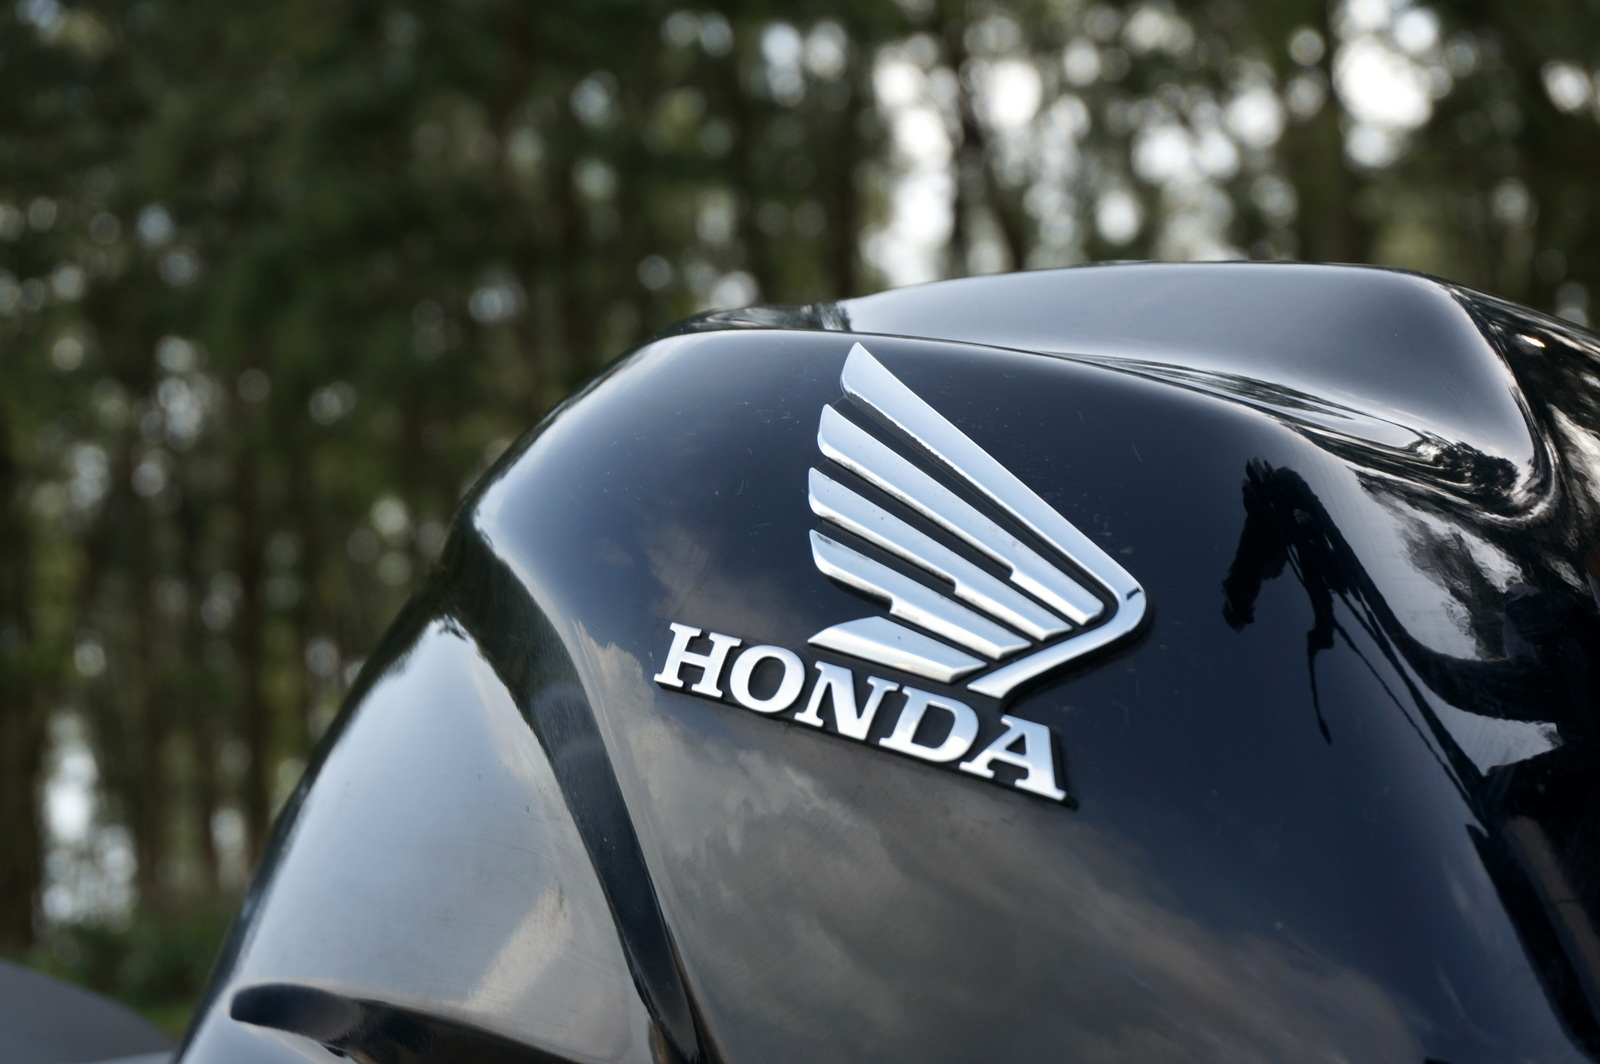 Production from Honda's 4th plant delayed